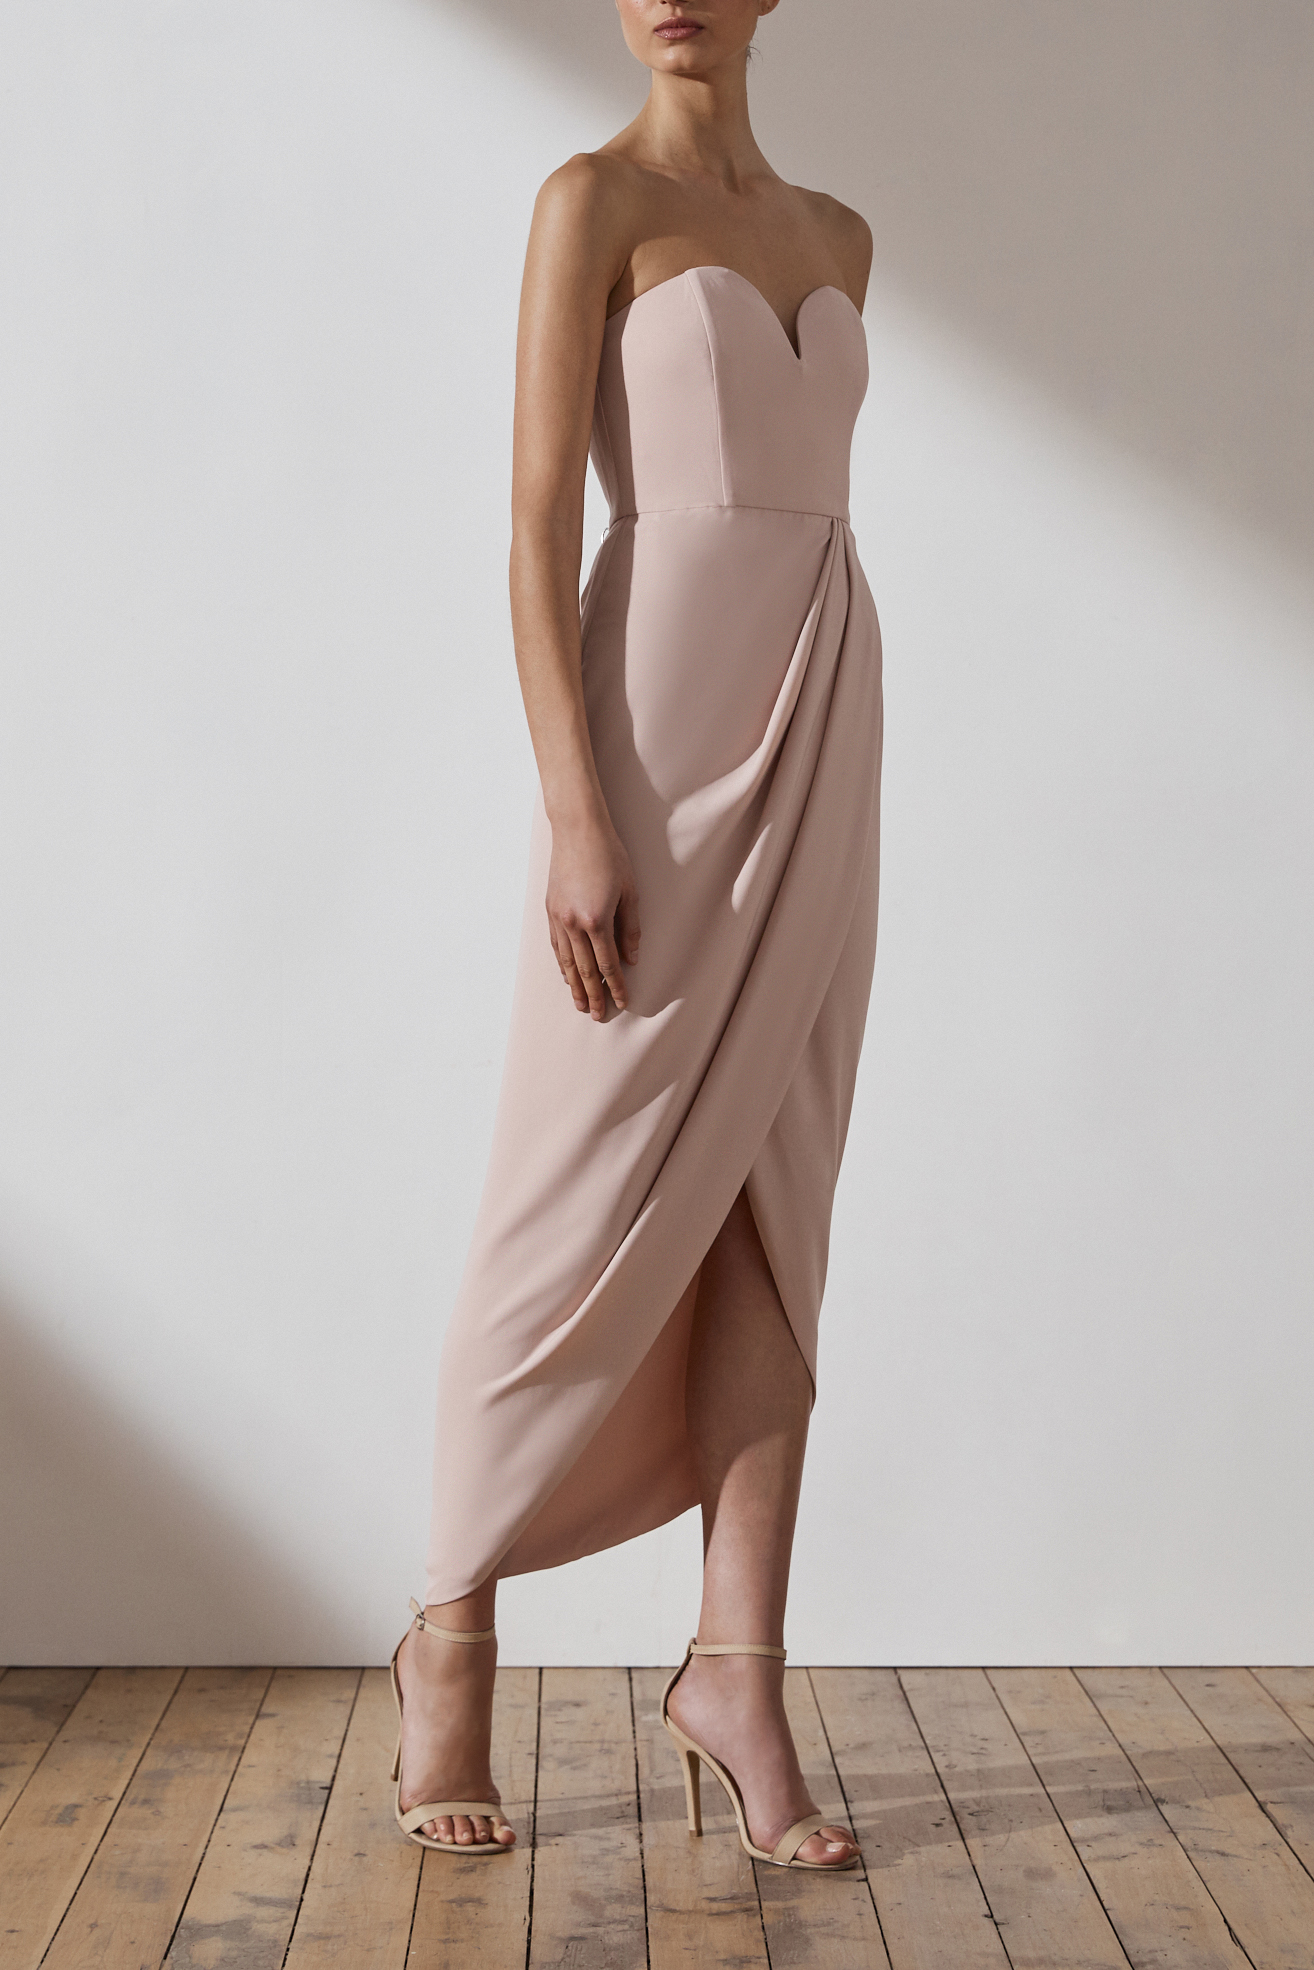 Shona Joy Zoe Bridesmaids Dress